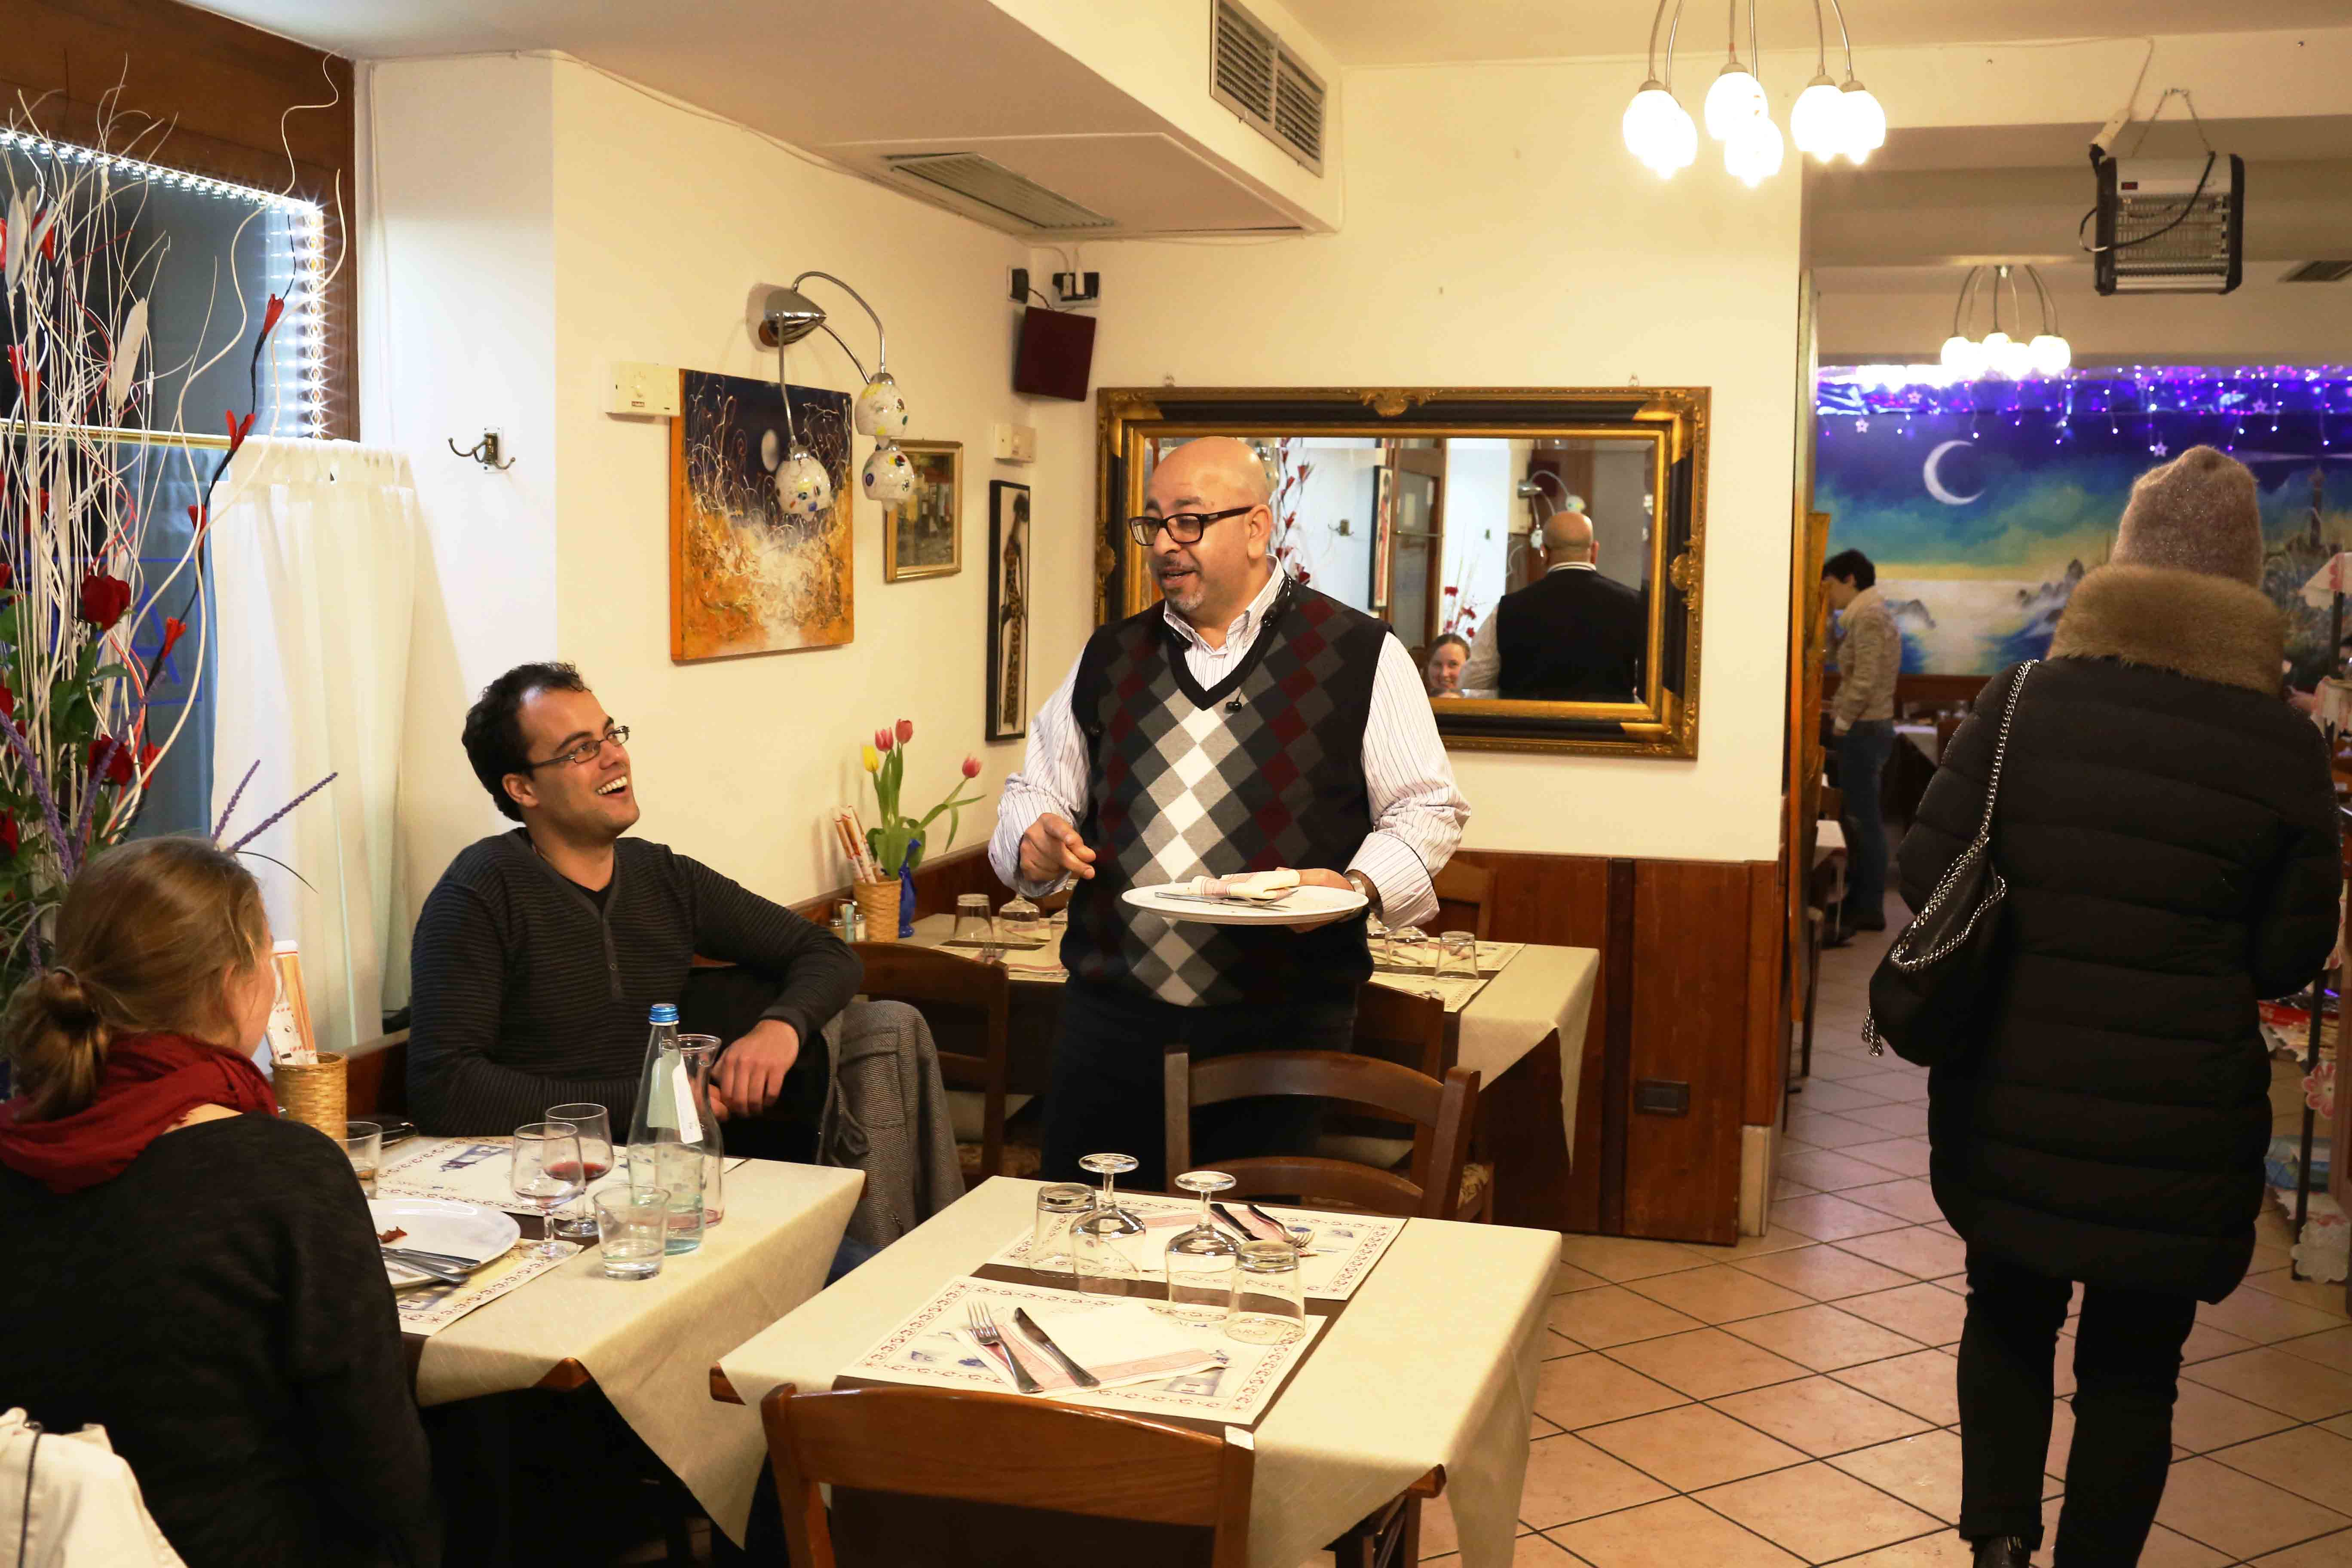 City Food - Youssef Safwat's Pizzeria, Venice Ghetto